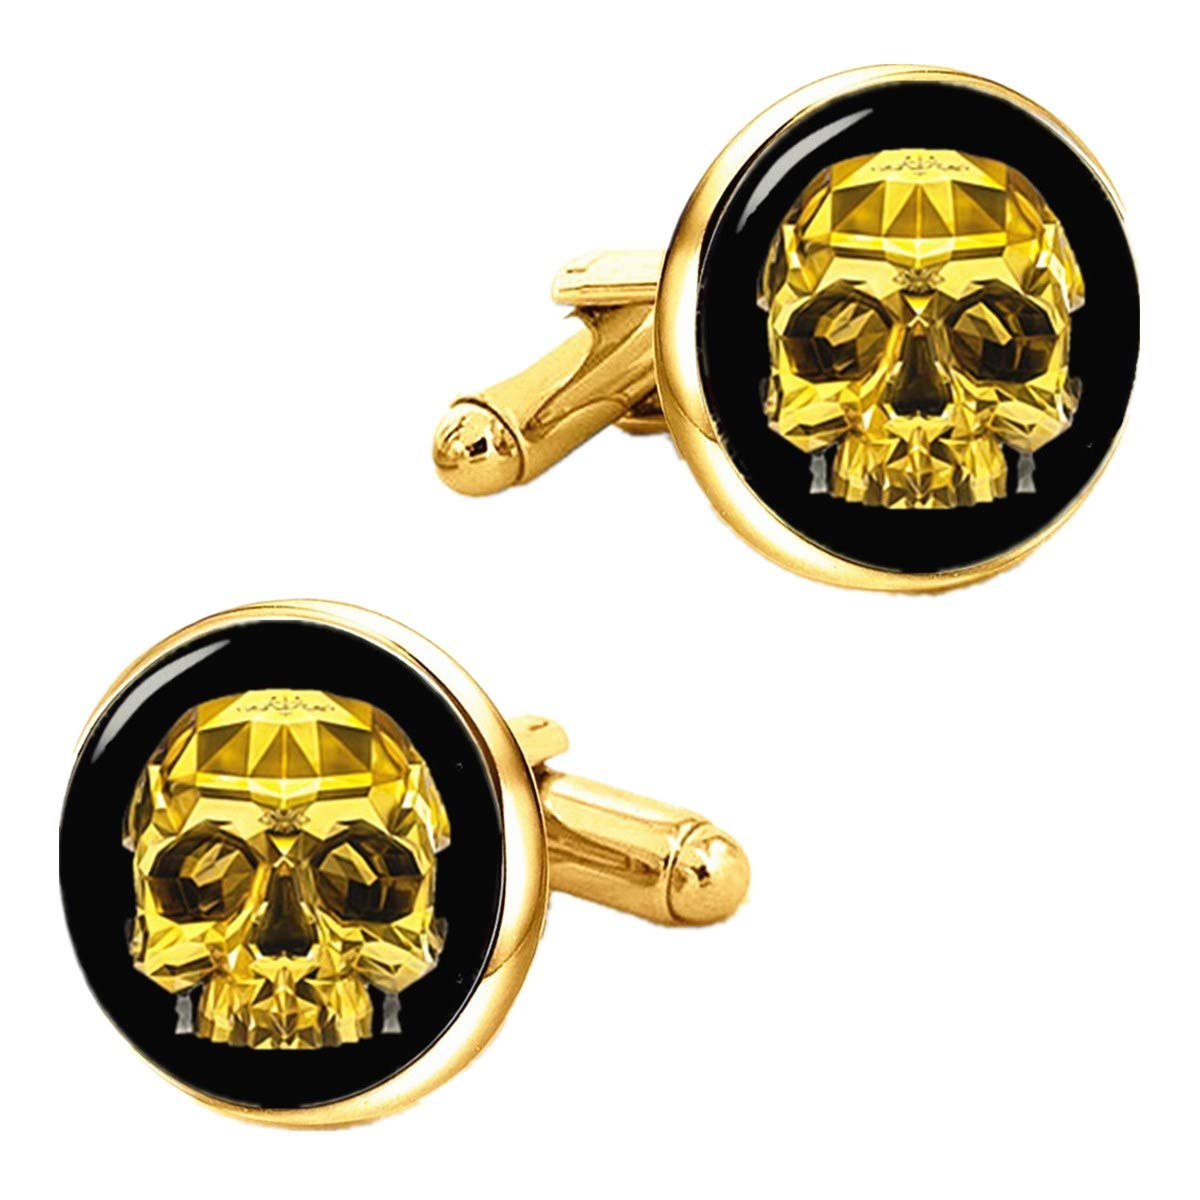 Kooer Vintage Gold Skull Cufflinks Handmade Custom Personalized Skull Cuff Links Wedding Jewelry Gift (Gold Plated)